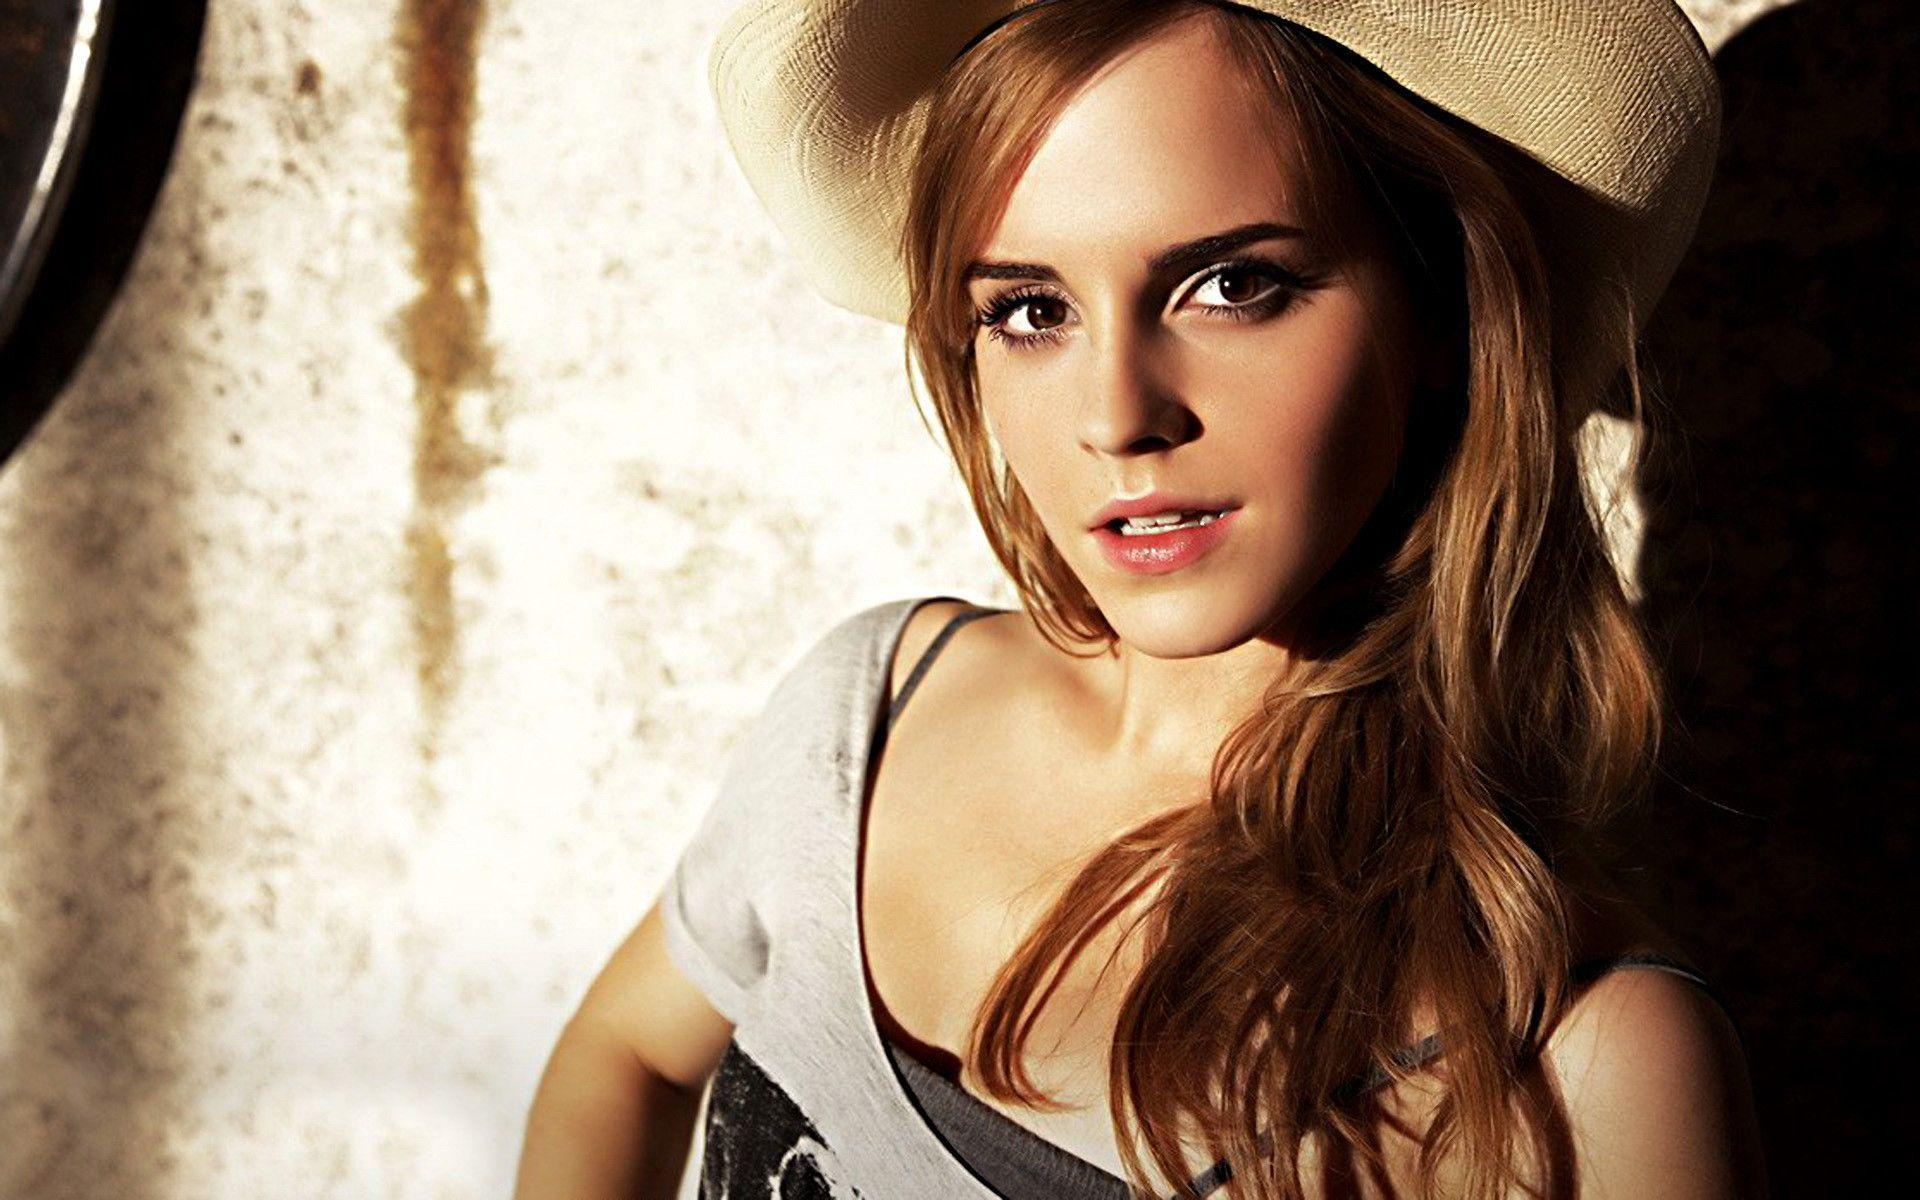 Emma Watson Computer Wallpapers, Desktop Backgrounds 1920x1200 Id ...